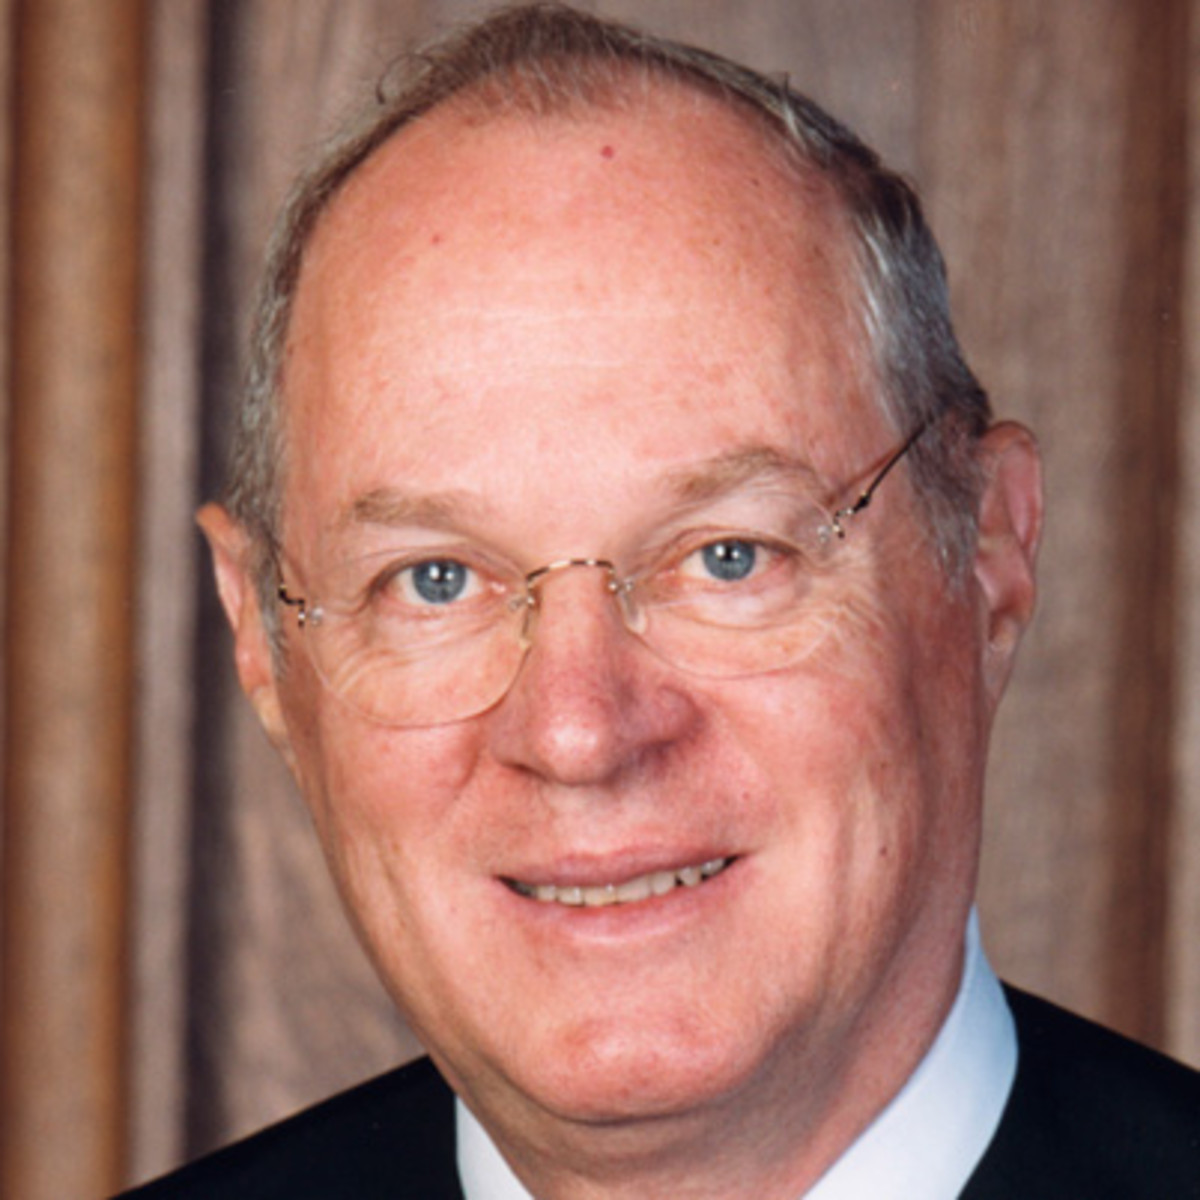 Why SCOTUS Appointment Matters - the Legacy of Justice Kennedy